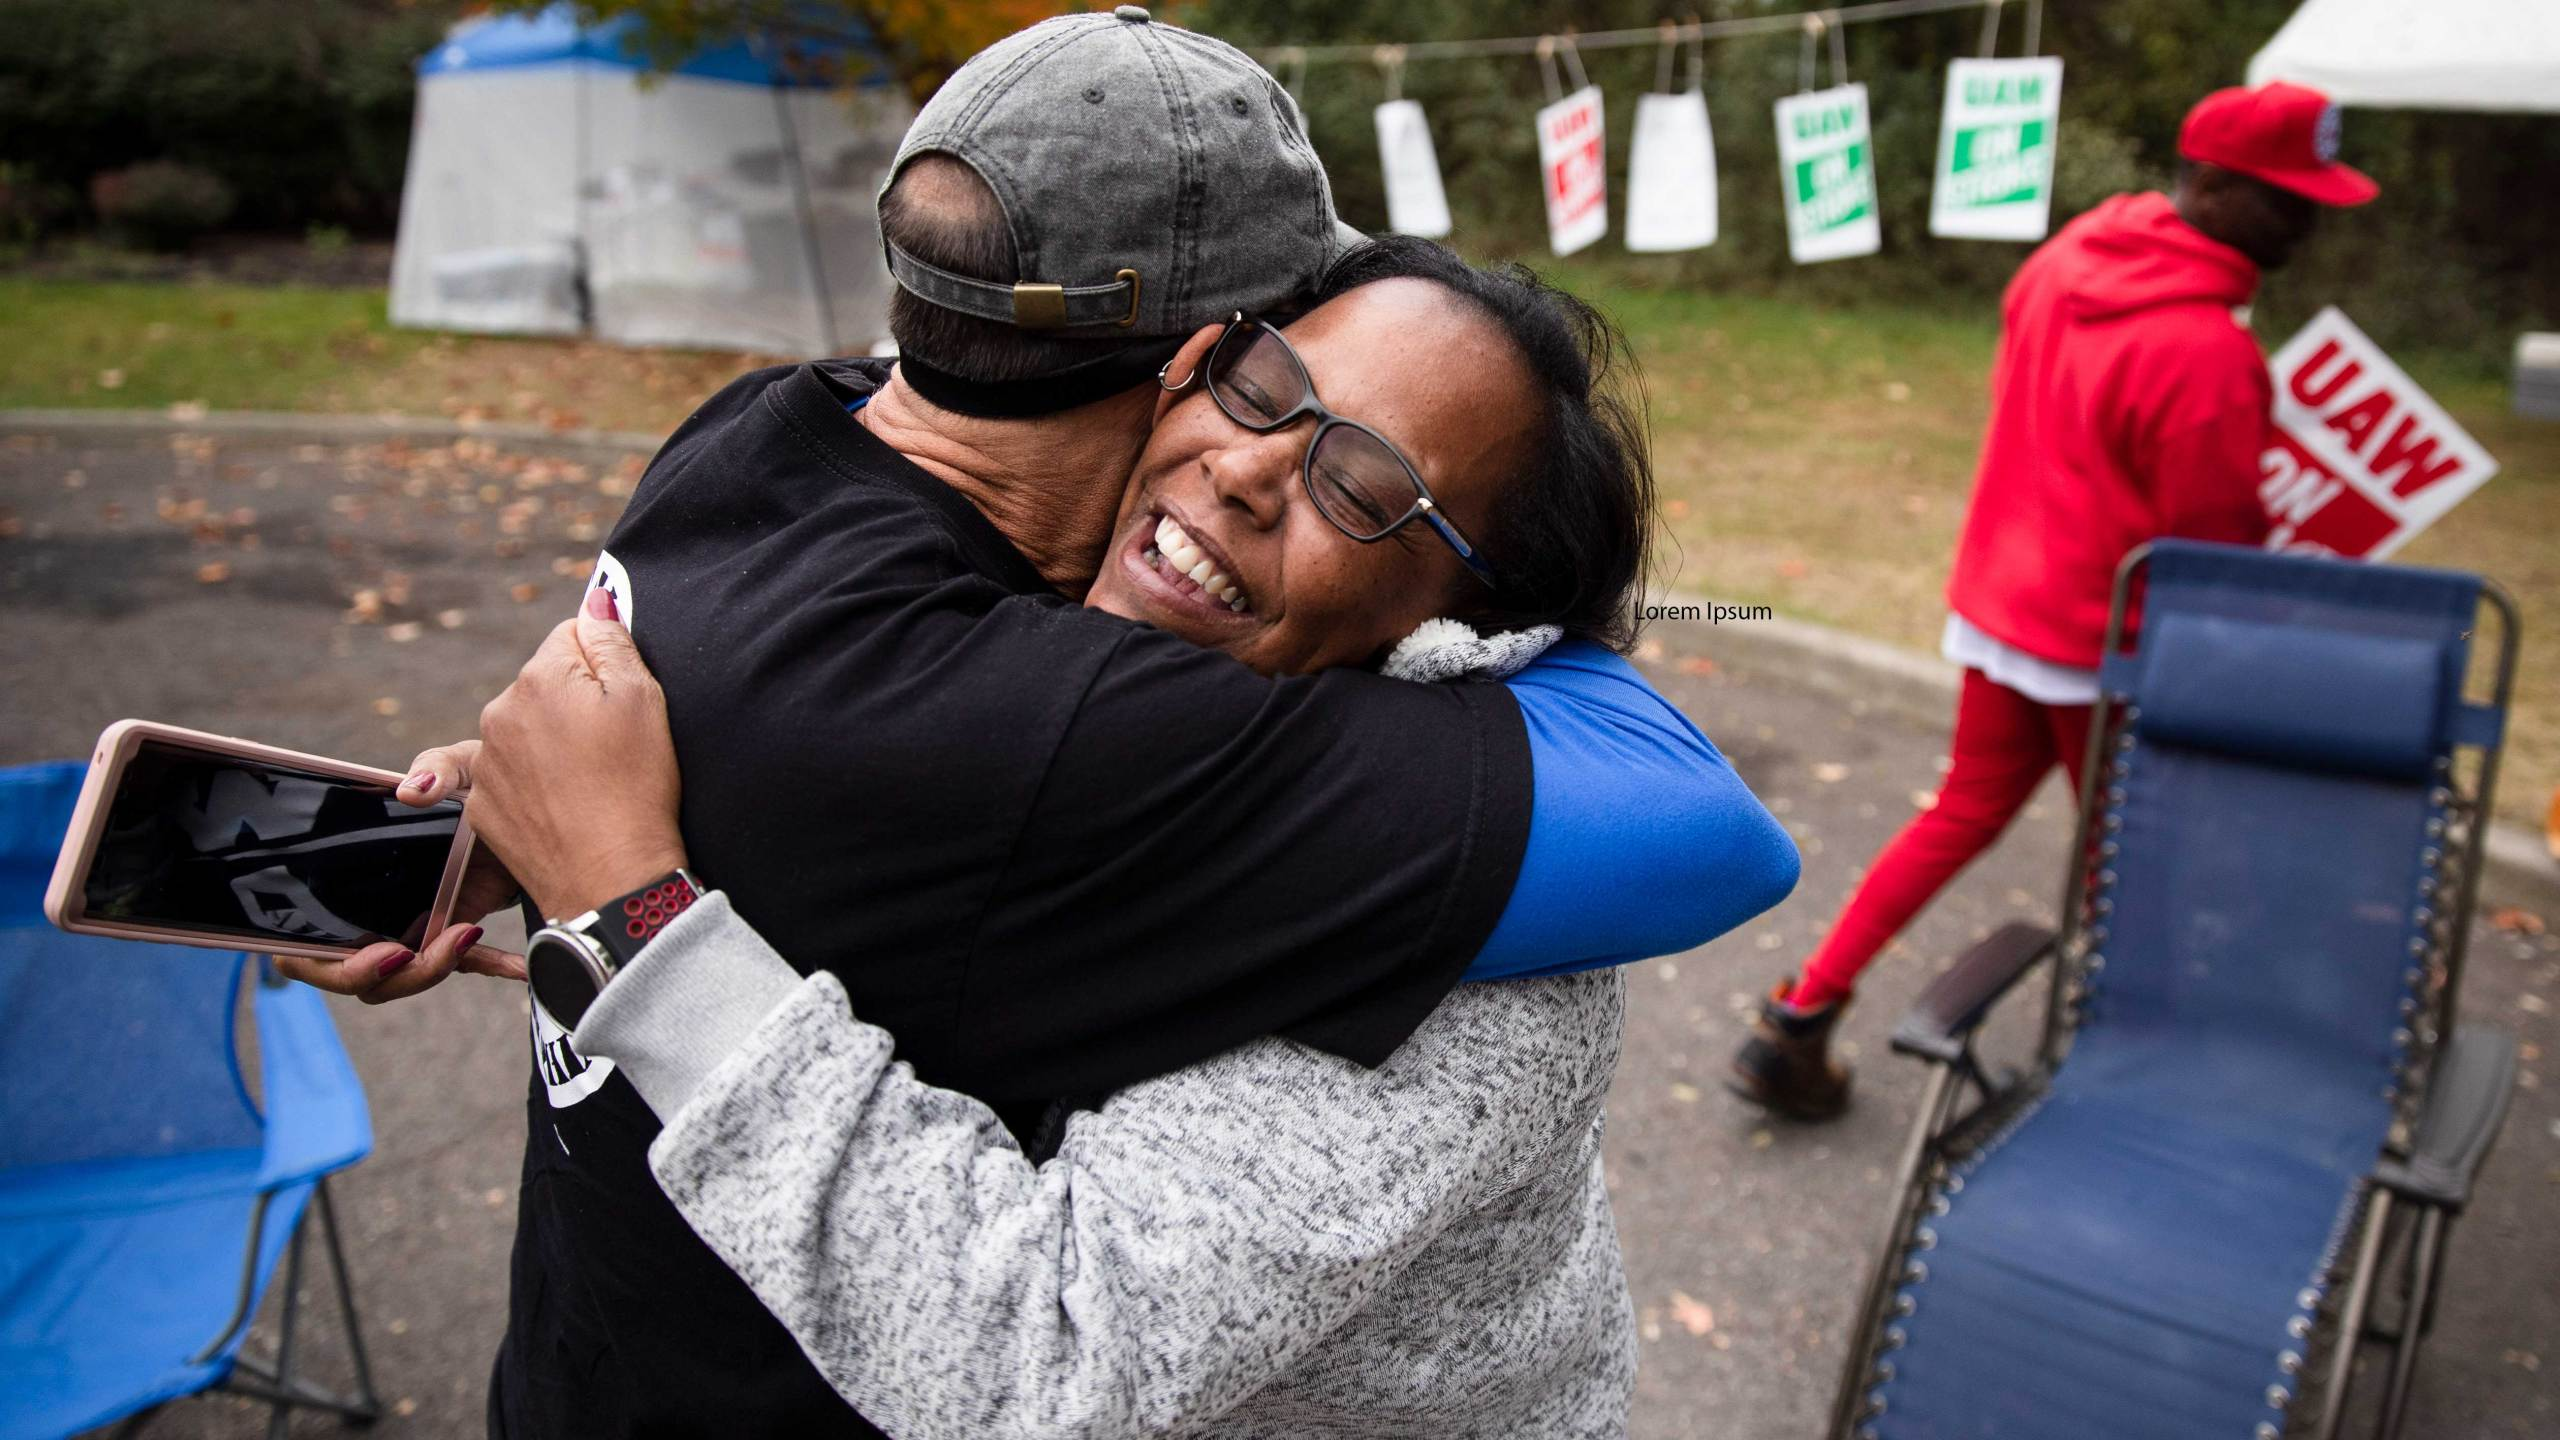 Picketing United Auto Workers Richard Rivera, left, and Robin Pinkney react to news of a tentative contract agreement with General Motors, in Langhorne, Pa., Wednesday, Oct. 16, 2019. Bargainers for General Motors and the United Auto Workers reached a tentative contract deal on Wednesday that could end a monthlong strike that brought the company's U.S. factories to a standstill. (